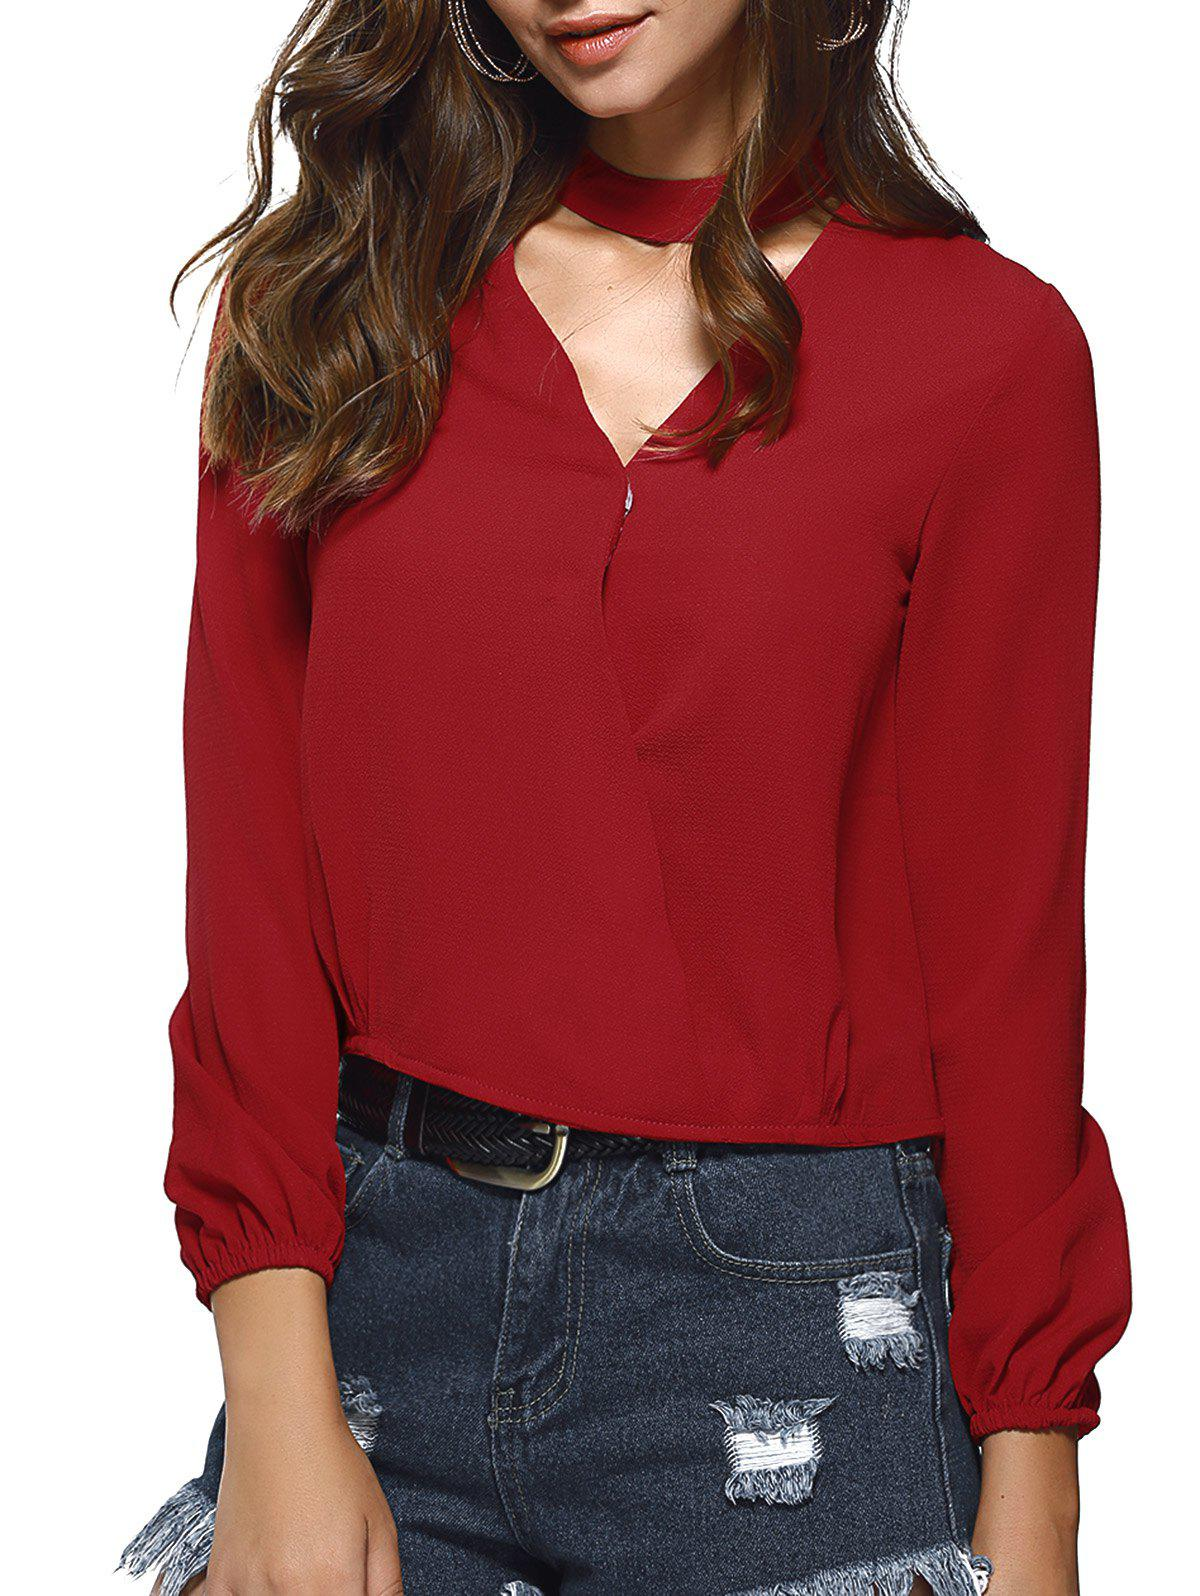 Chocker Low Cut Pure Color Long Sleeve Shirt - RED S